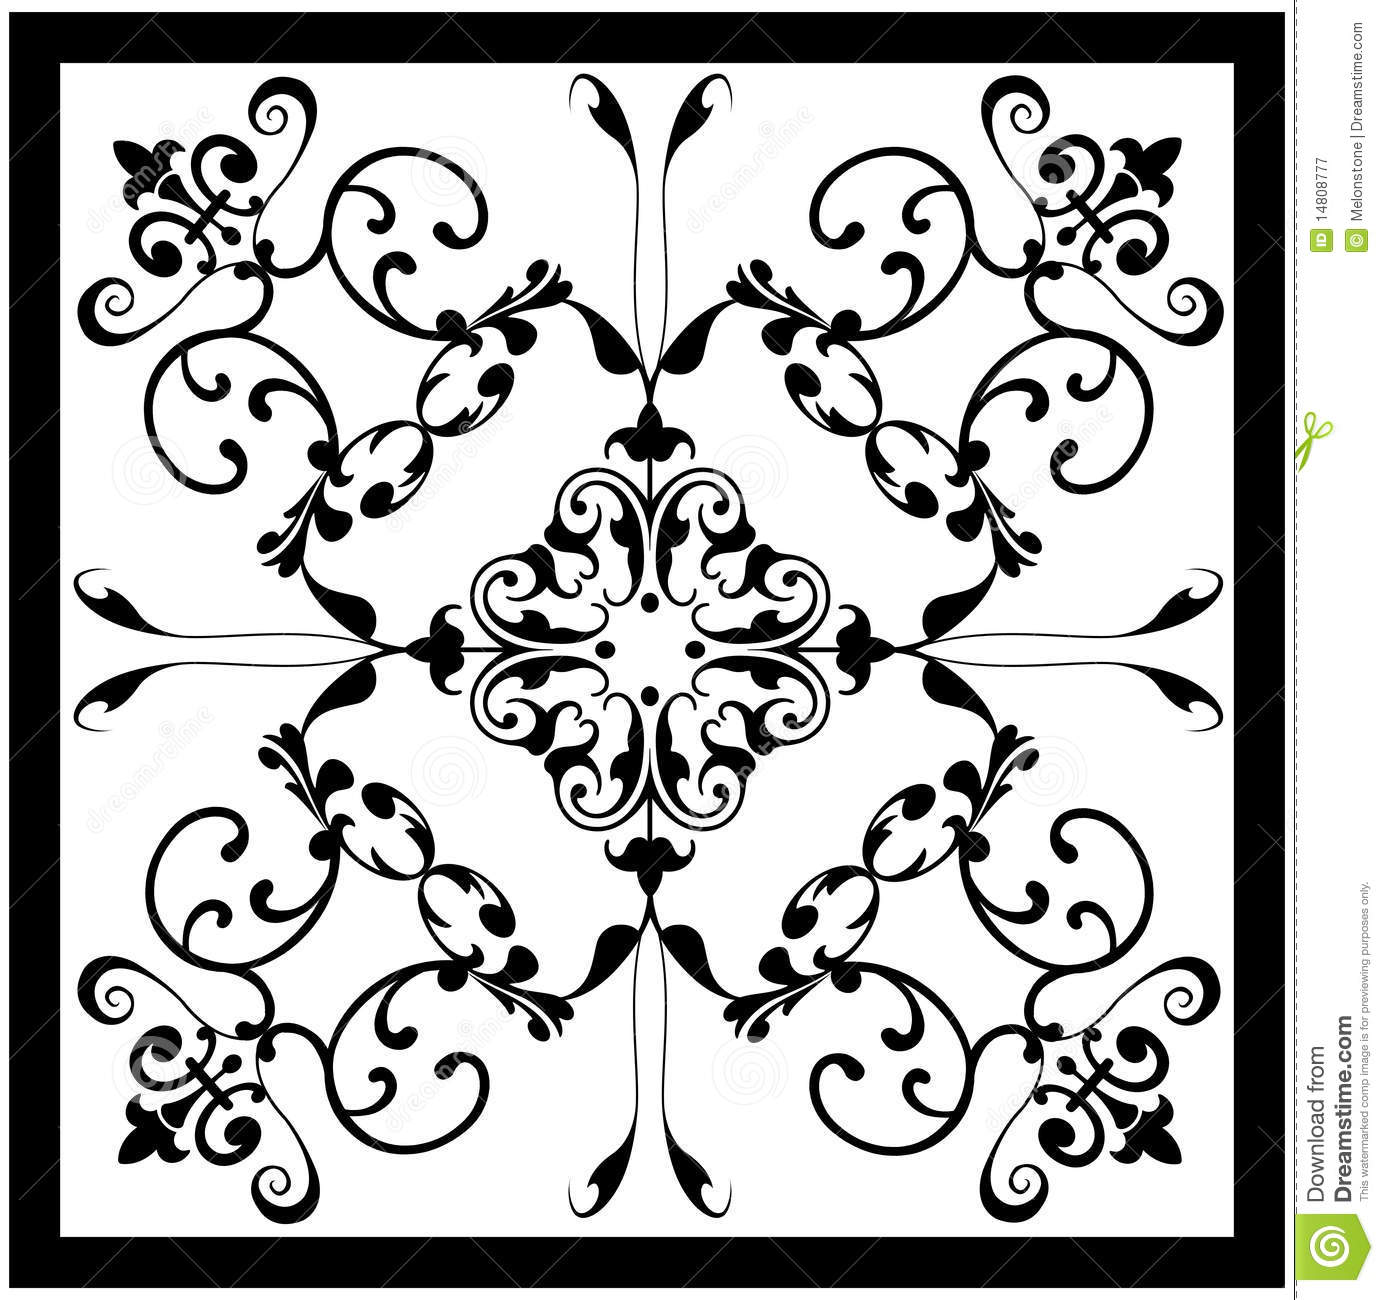 Black White Vintage Tile Royalty Free Stock Photography - Image ...